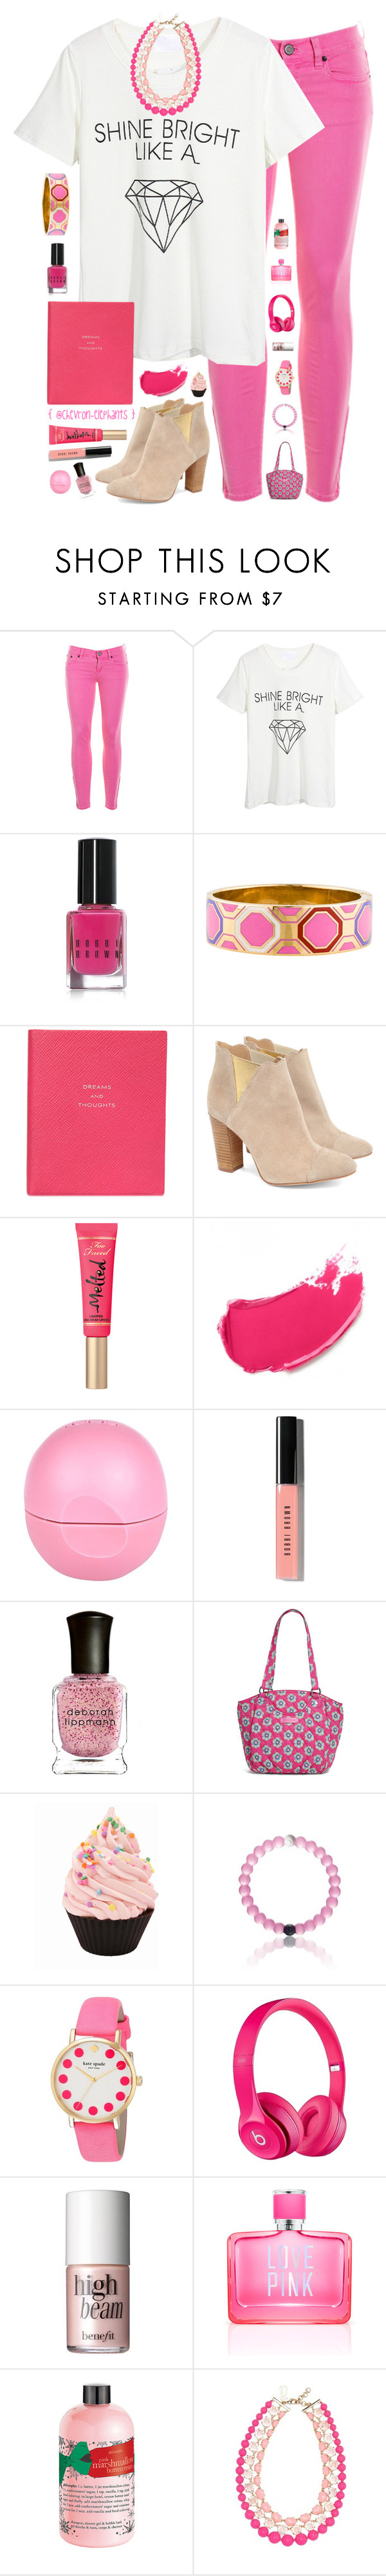 """""""The Day The Crayons Quit // The Day The Crayons Came Home"""" by chevron-elephants ❤ liked on Polyvore featuring J.Crew, WithChic, Bobbi Brown Cosmetics, Kate Spade, Smythson, Cleo B, tarte, River Island, Deborah Lippmann and Vera Bradley"""